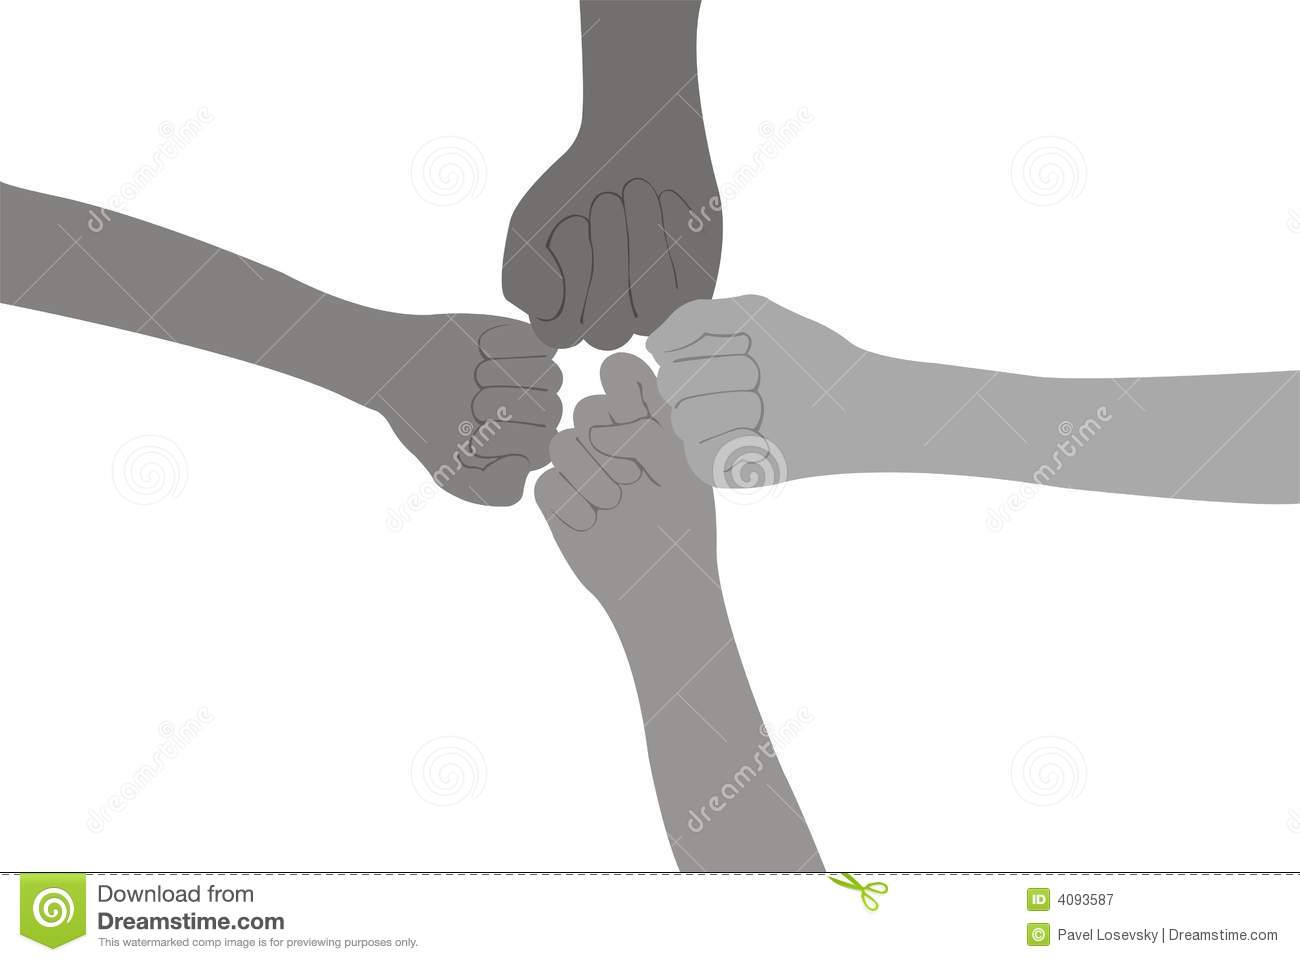 Images Of Fists - ClipArt Best